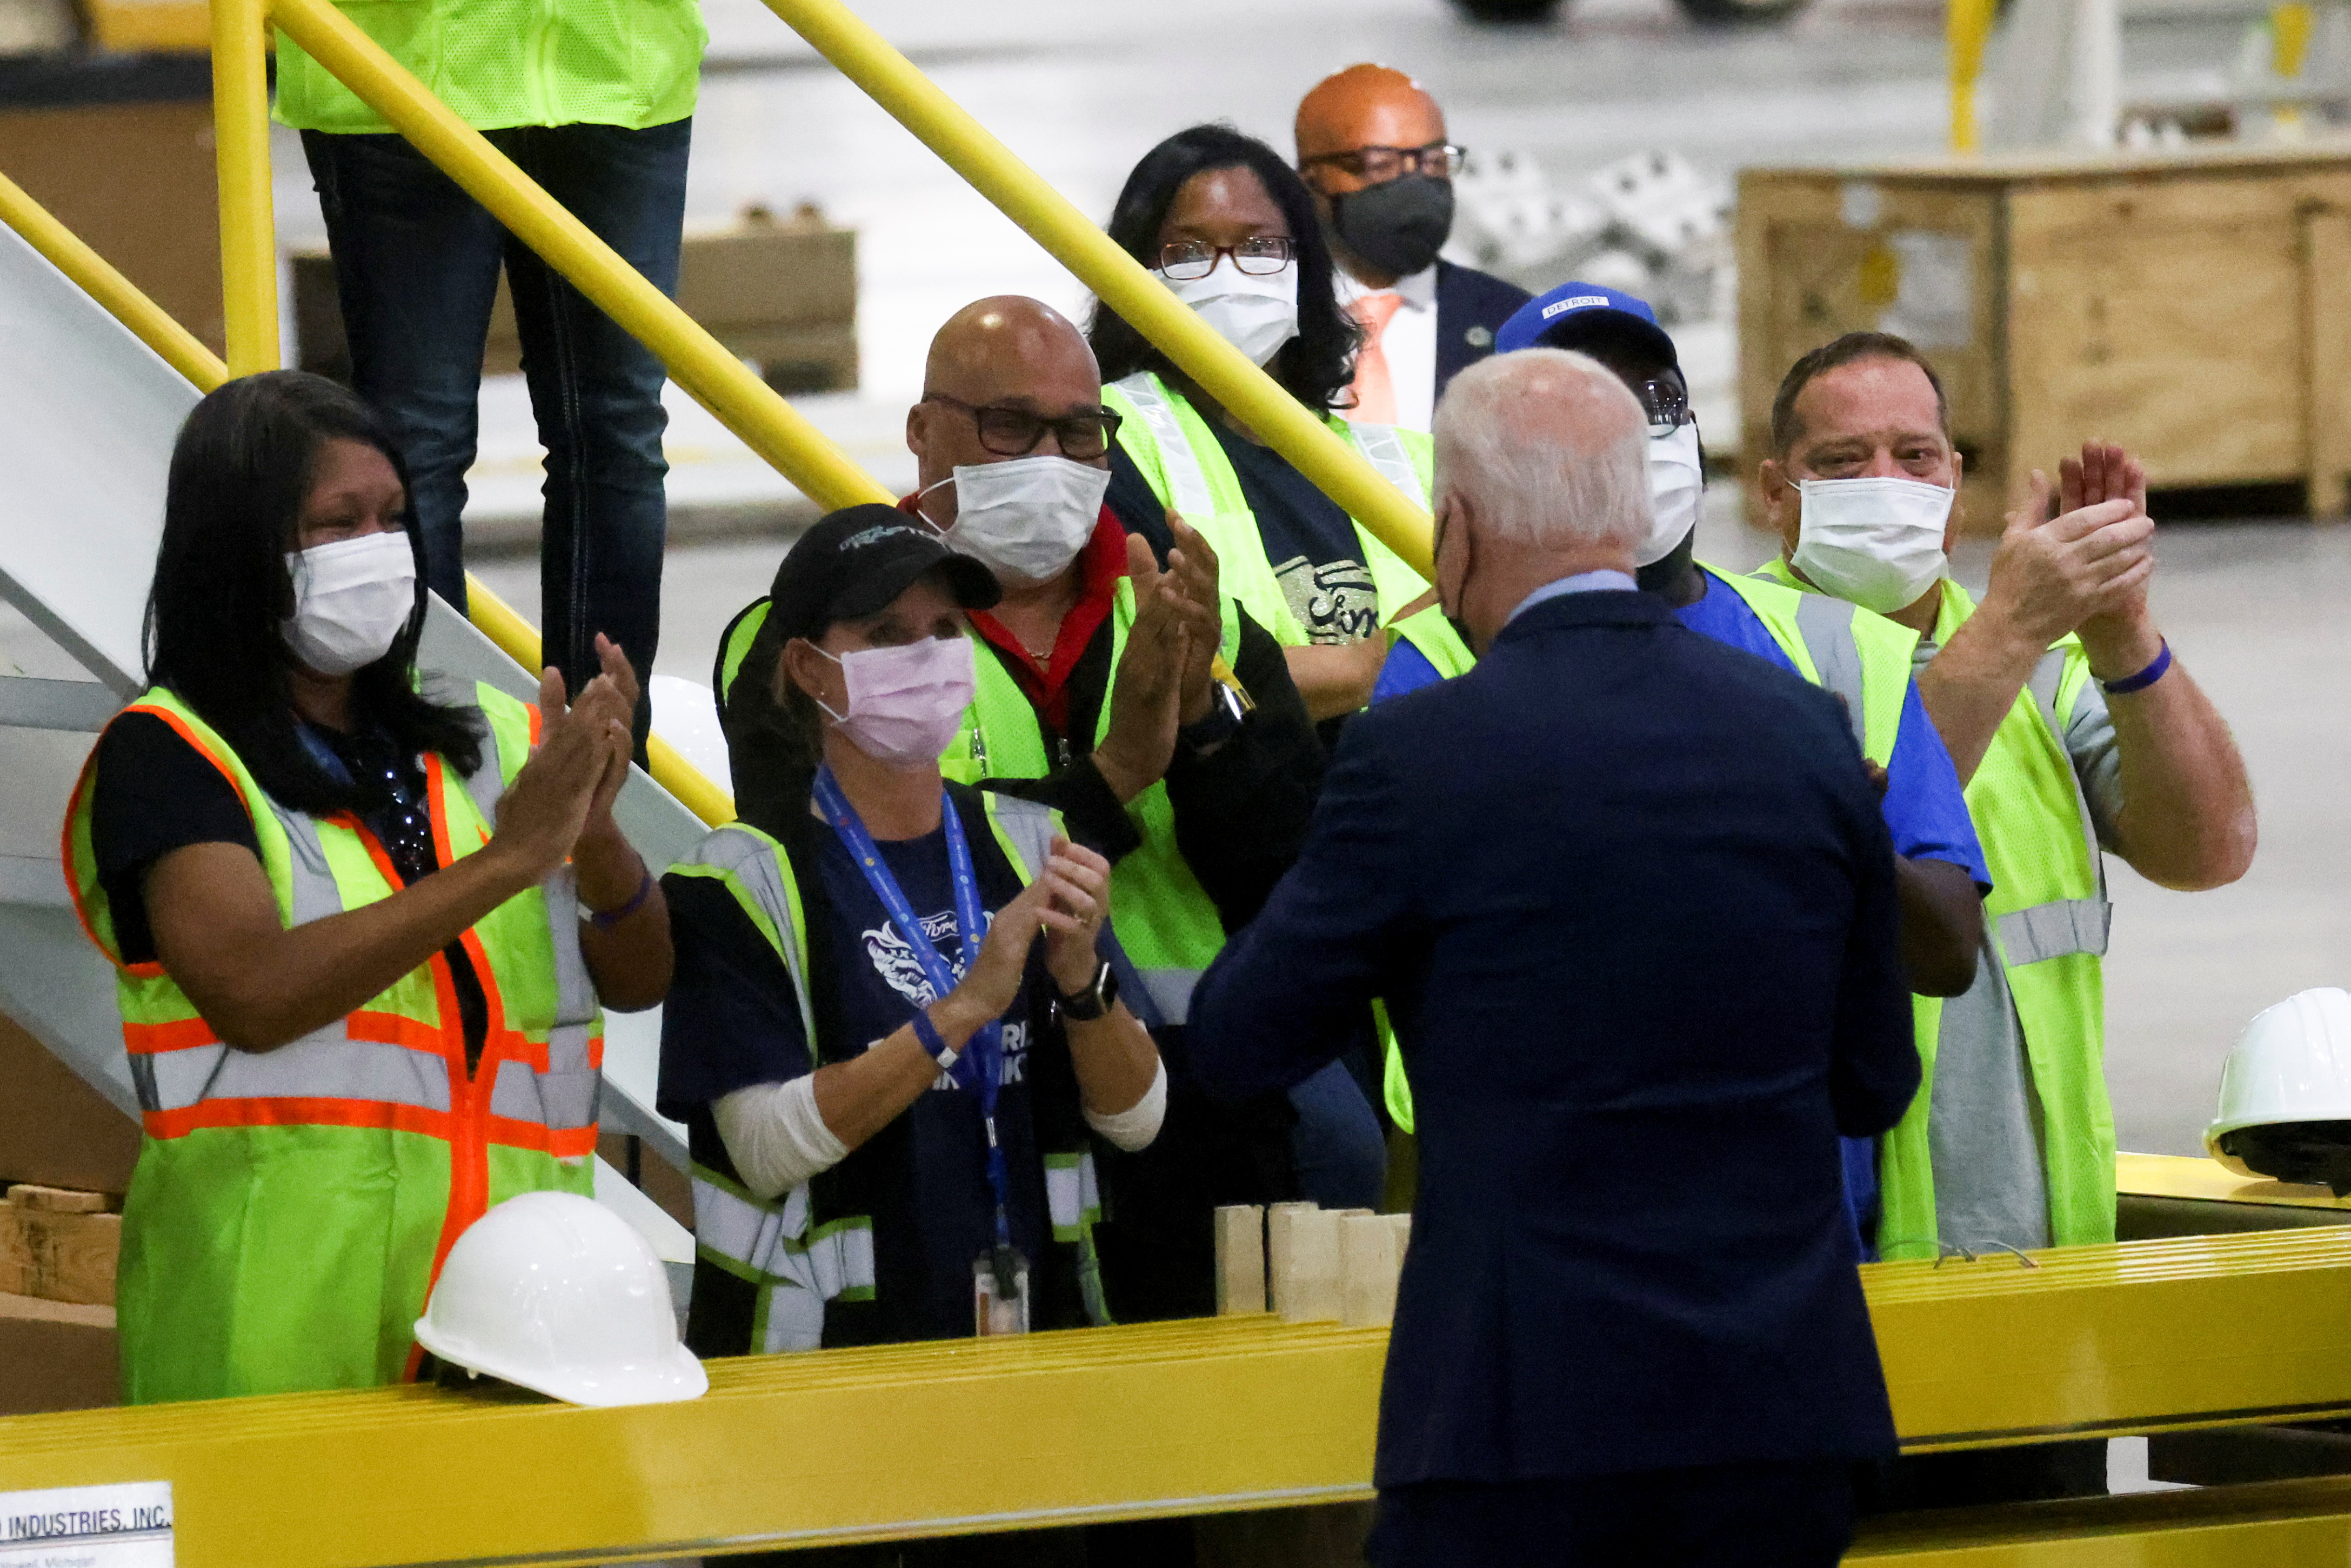 U.S. President Joe Biden greets workers after delivering remarks during a visit to Ford Rouge Electric Vehicle Center in Dearborn, Michigan, U.S., May 18, 2021.  REUTERS/Leah Millis